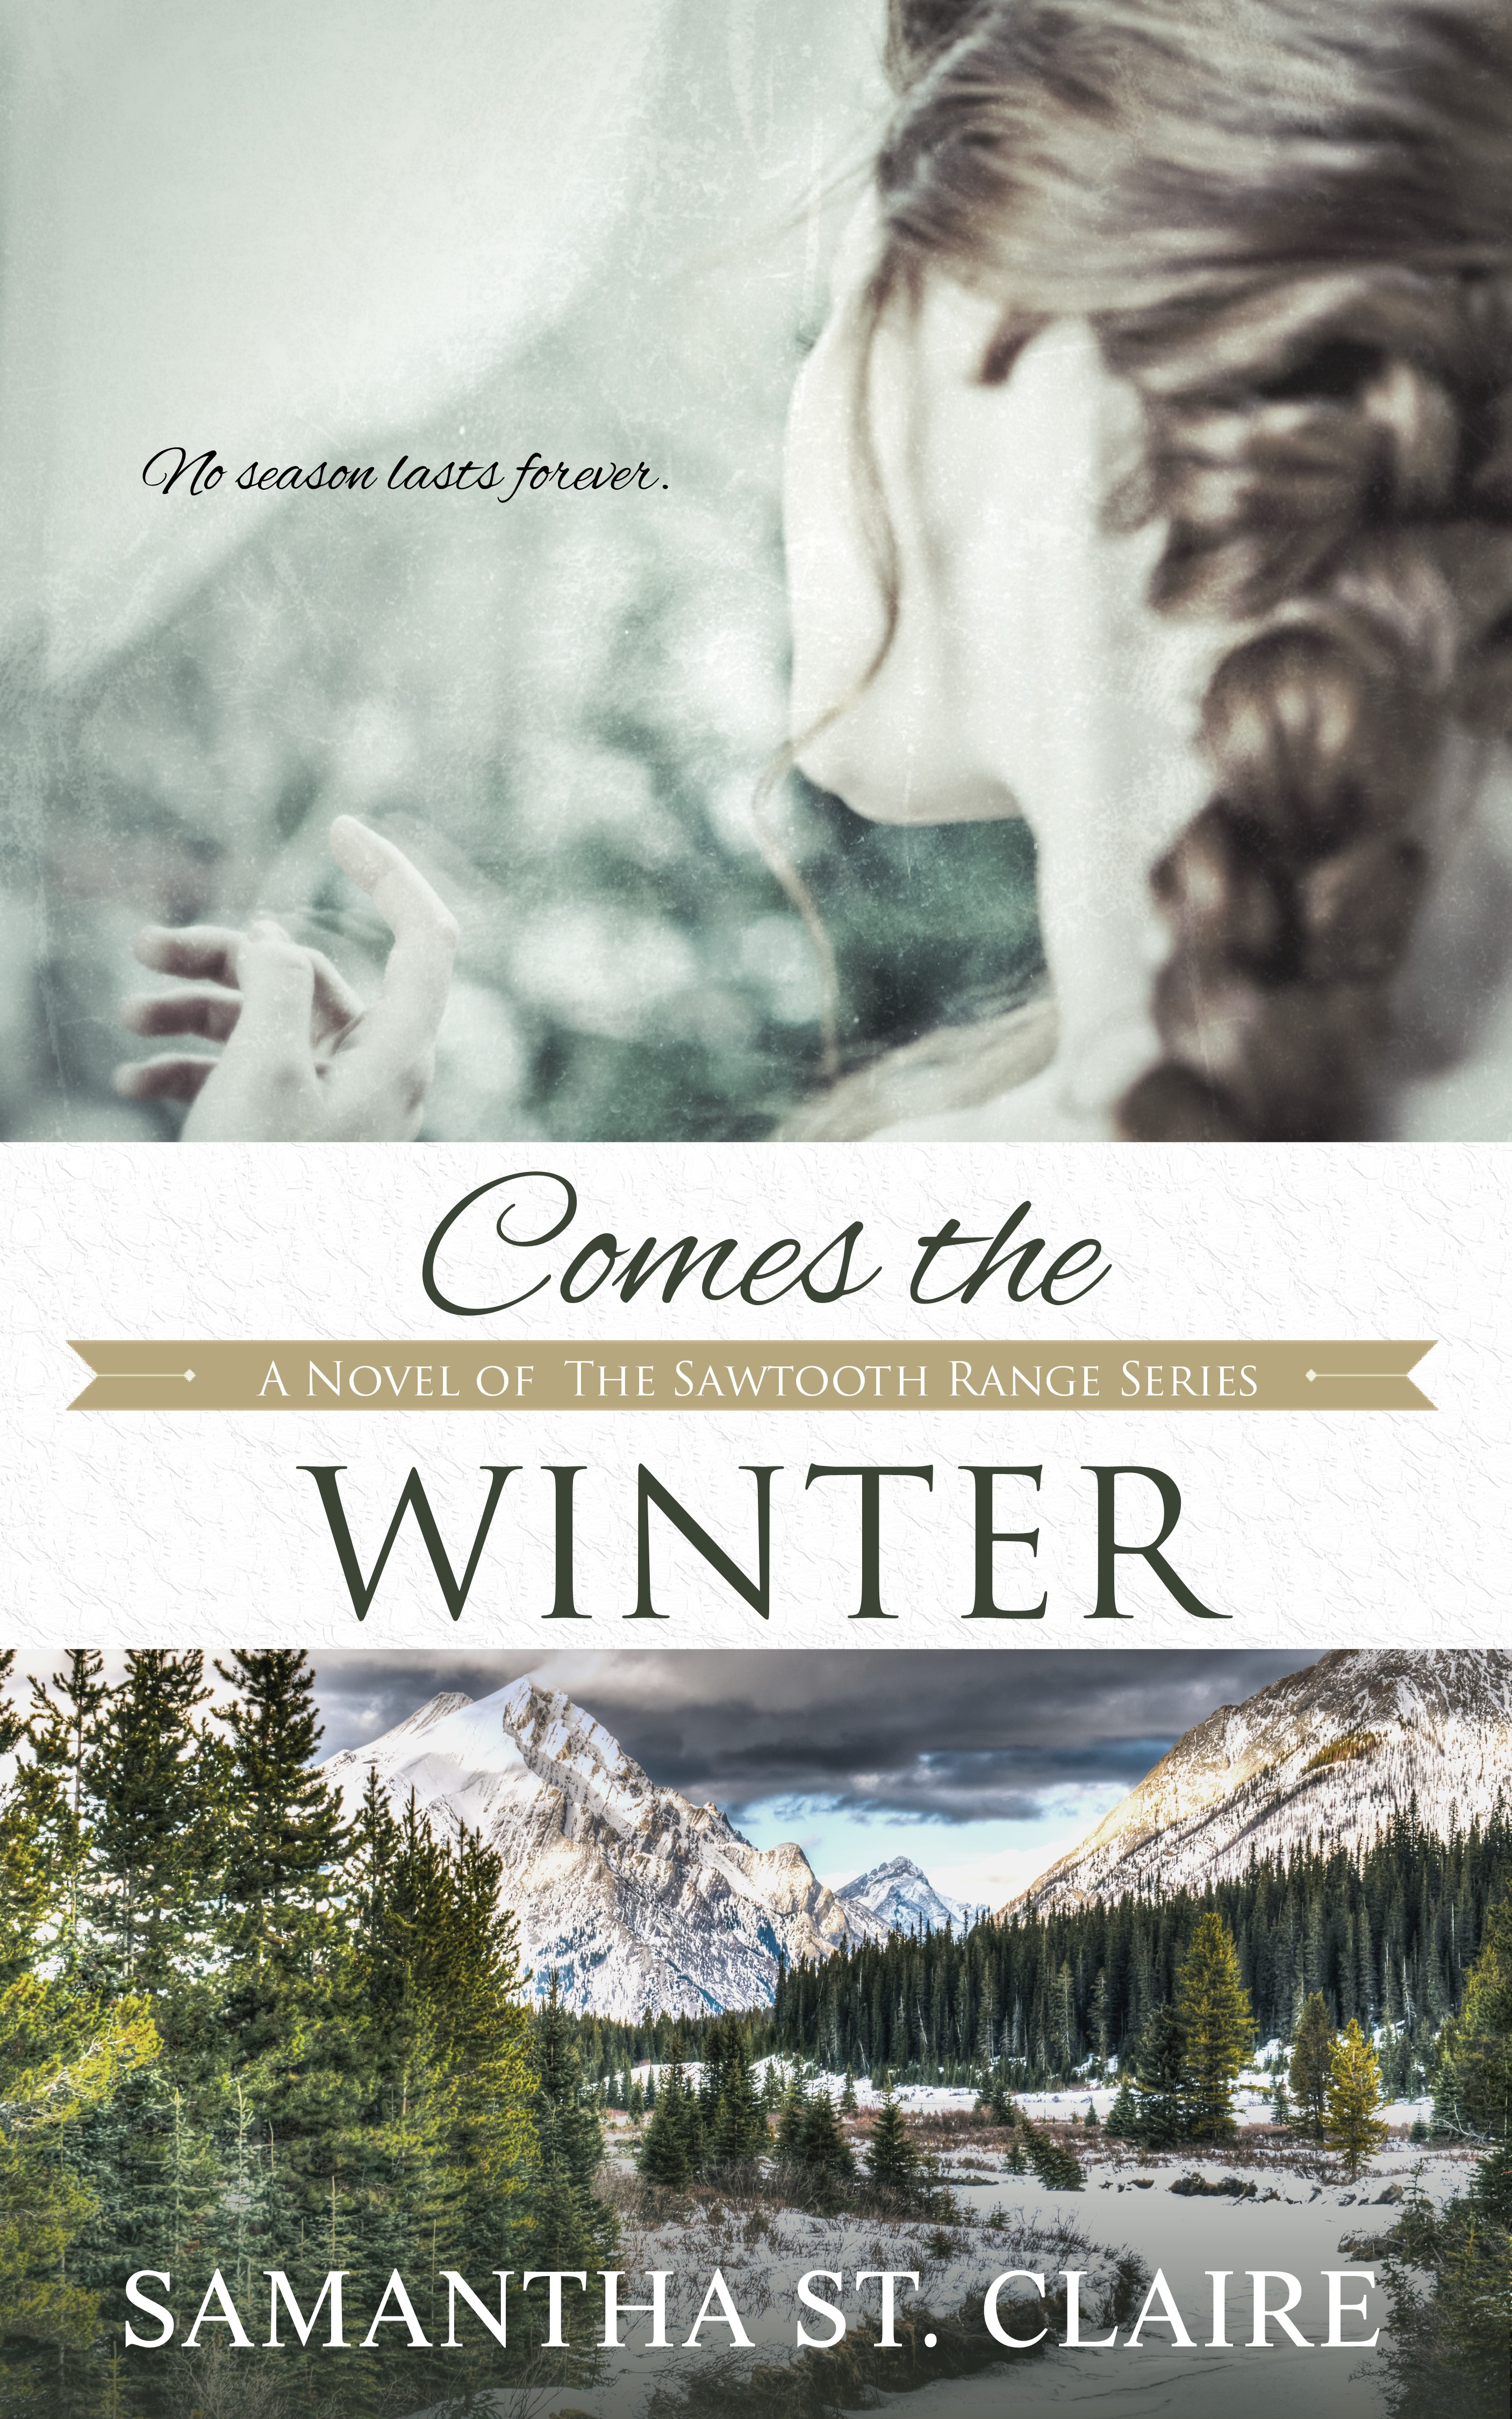 Comes the Winter_Samantha St. Claire